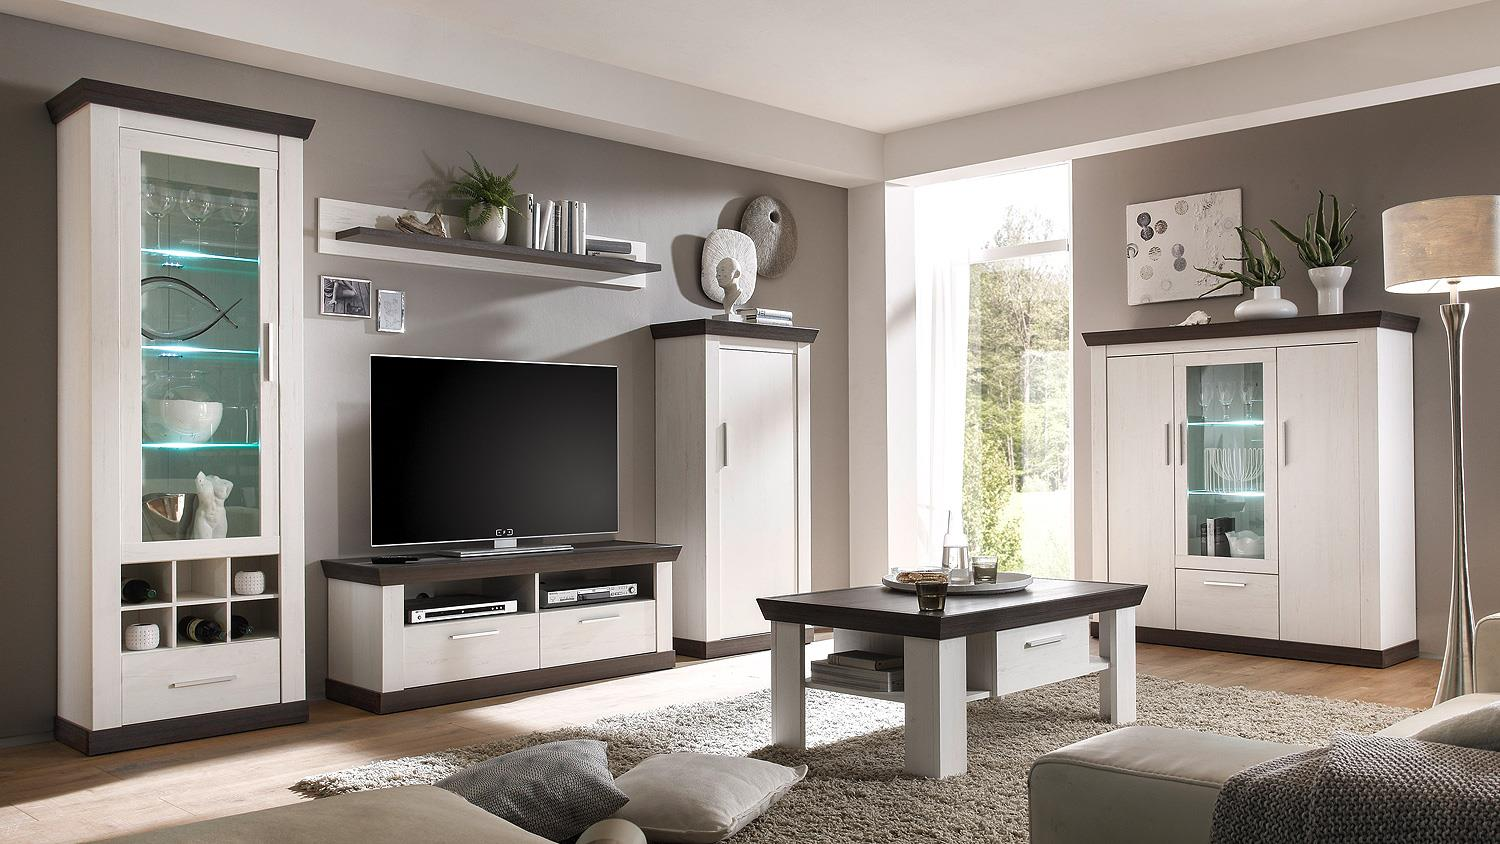 lowboard tiena tv board in pinie wei und wenge haptik 134. Black Bedroom Furniture Sets. Home Design Ideas